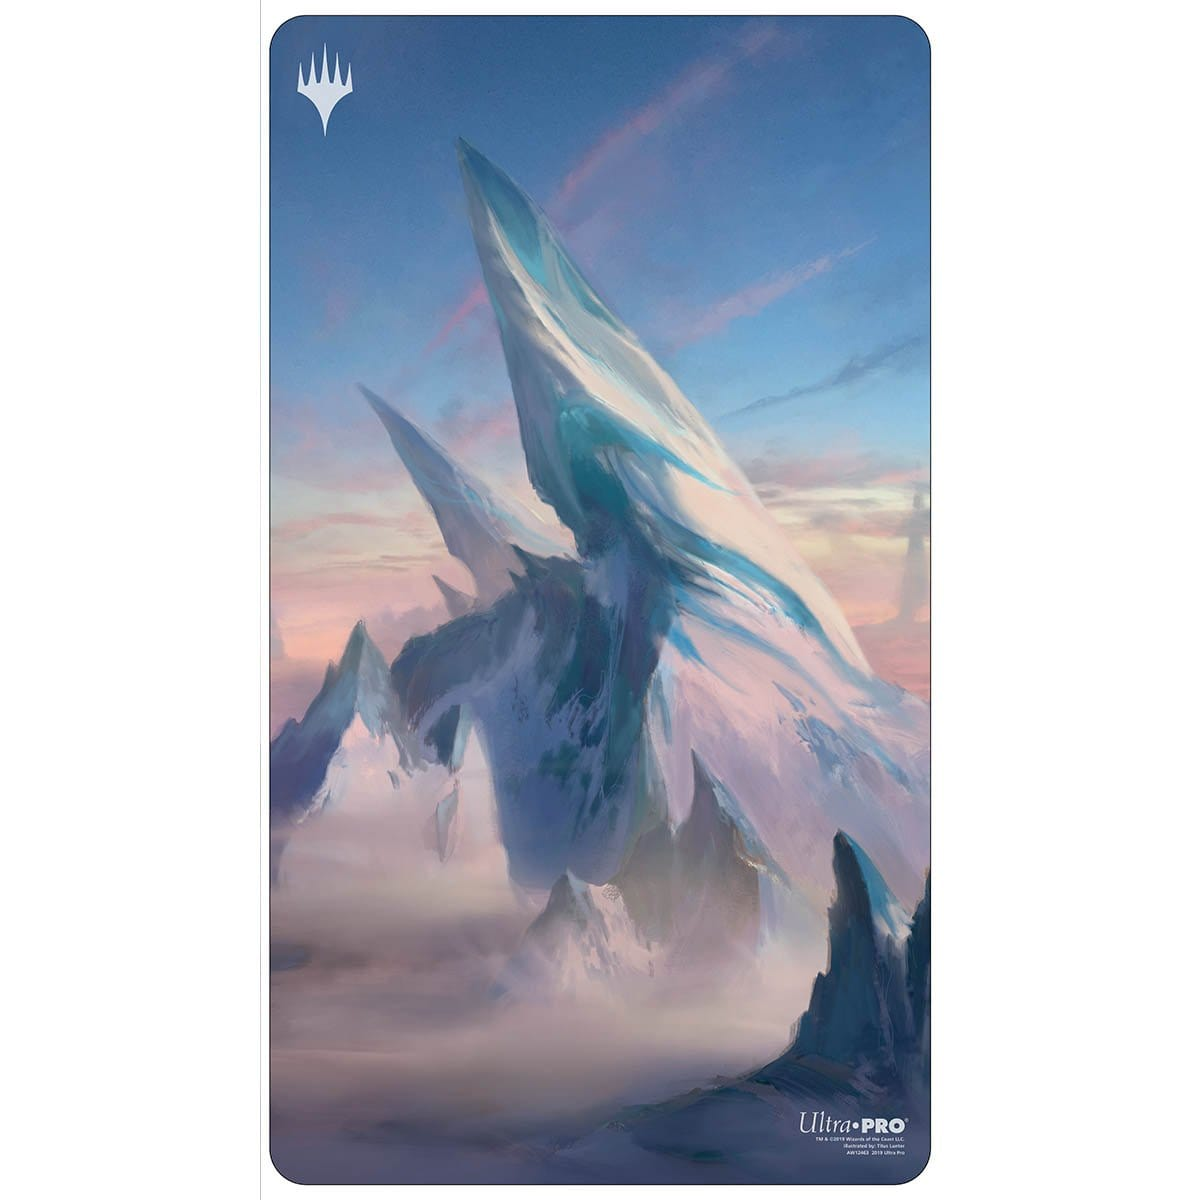 Snow-Covered Mountain Playmat - Playmat - Original Magic Art - Accessories for Magic the Gathering and other card games